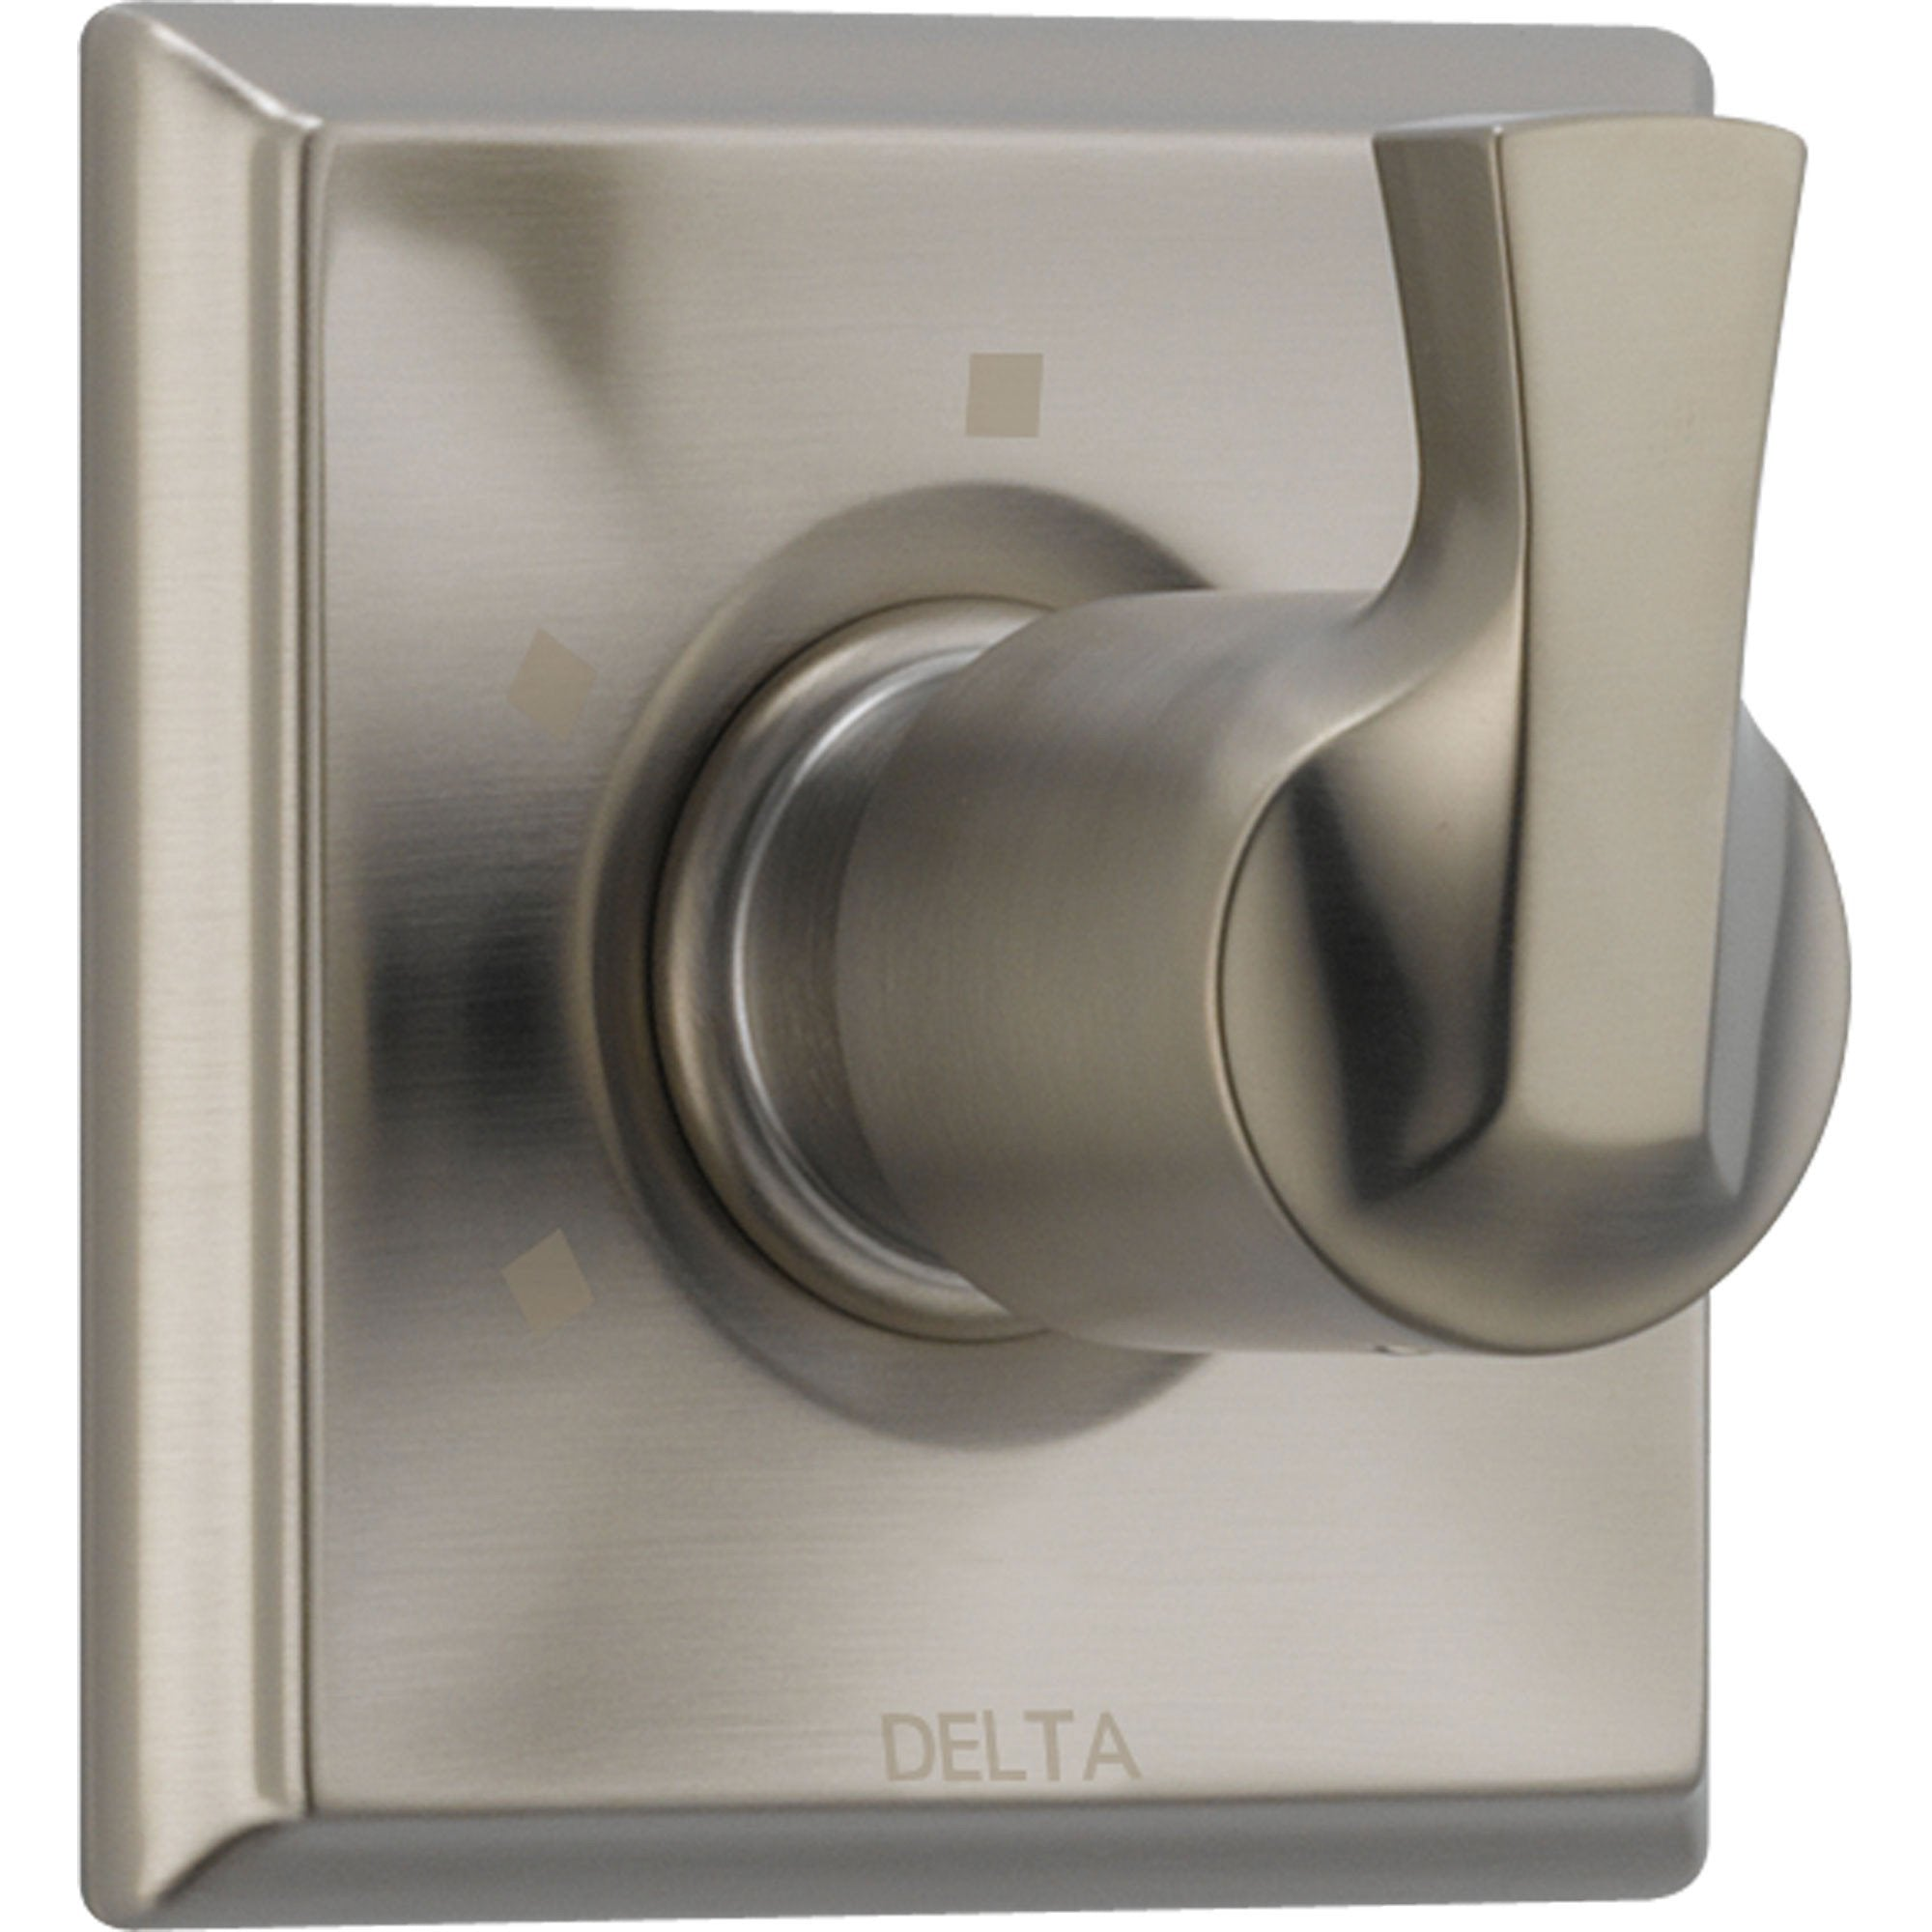 Delta 3-Setting Stainless Steel Finish Shower Diverter Single Handle Trim 560970